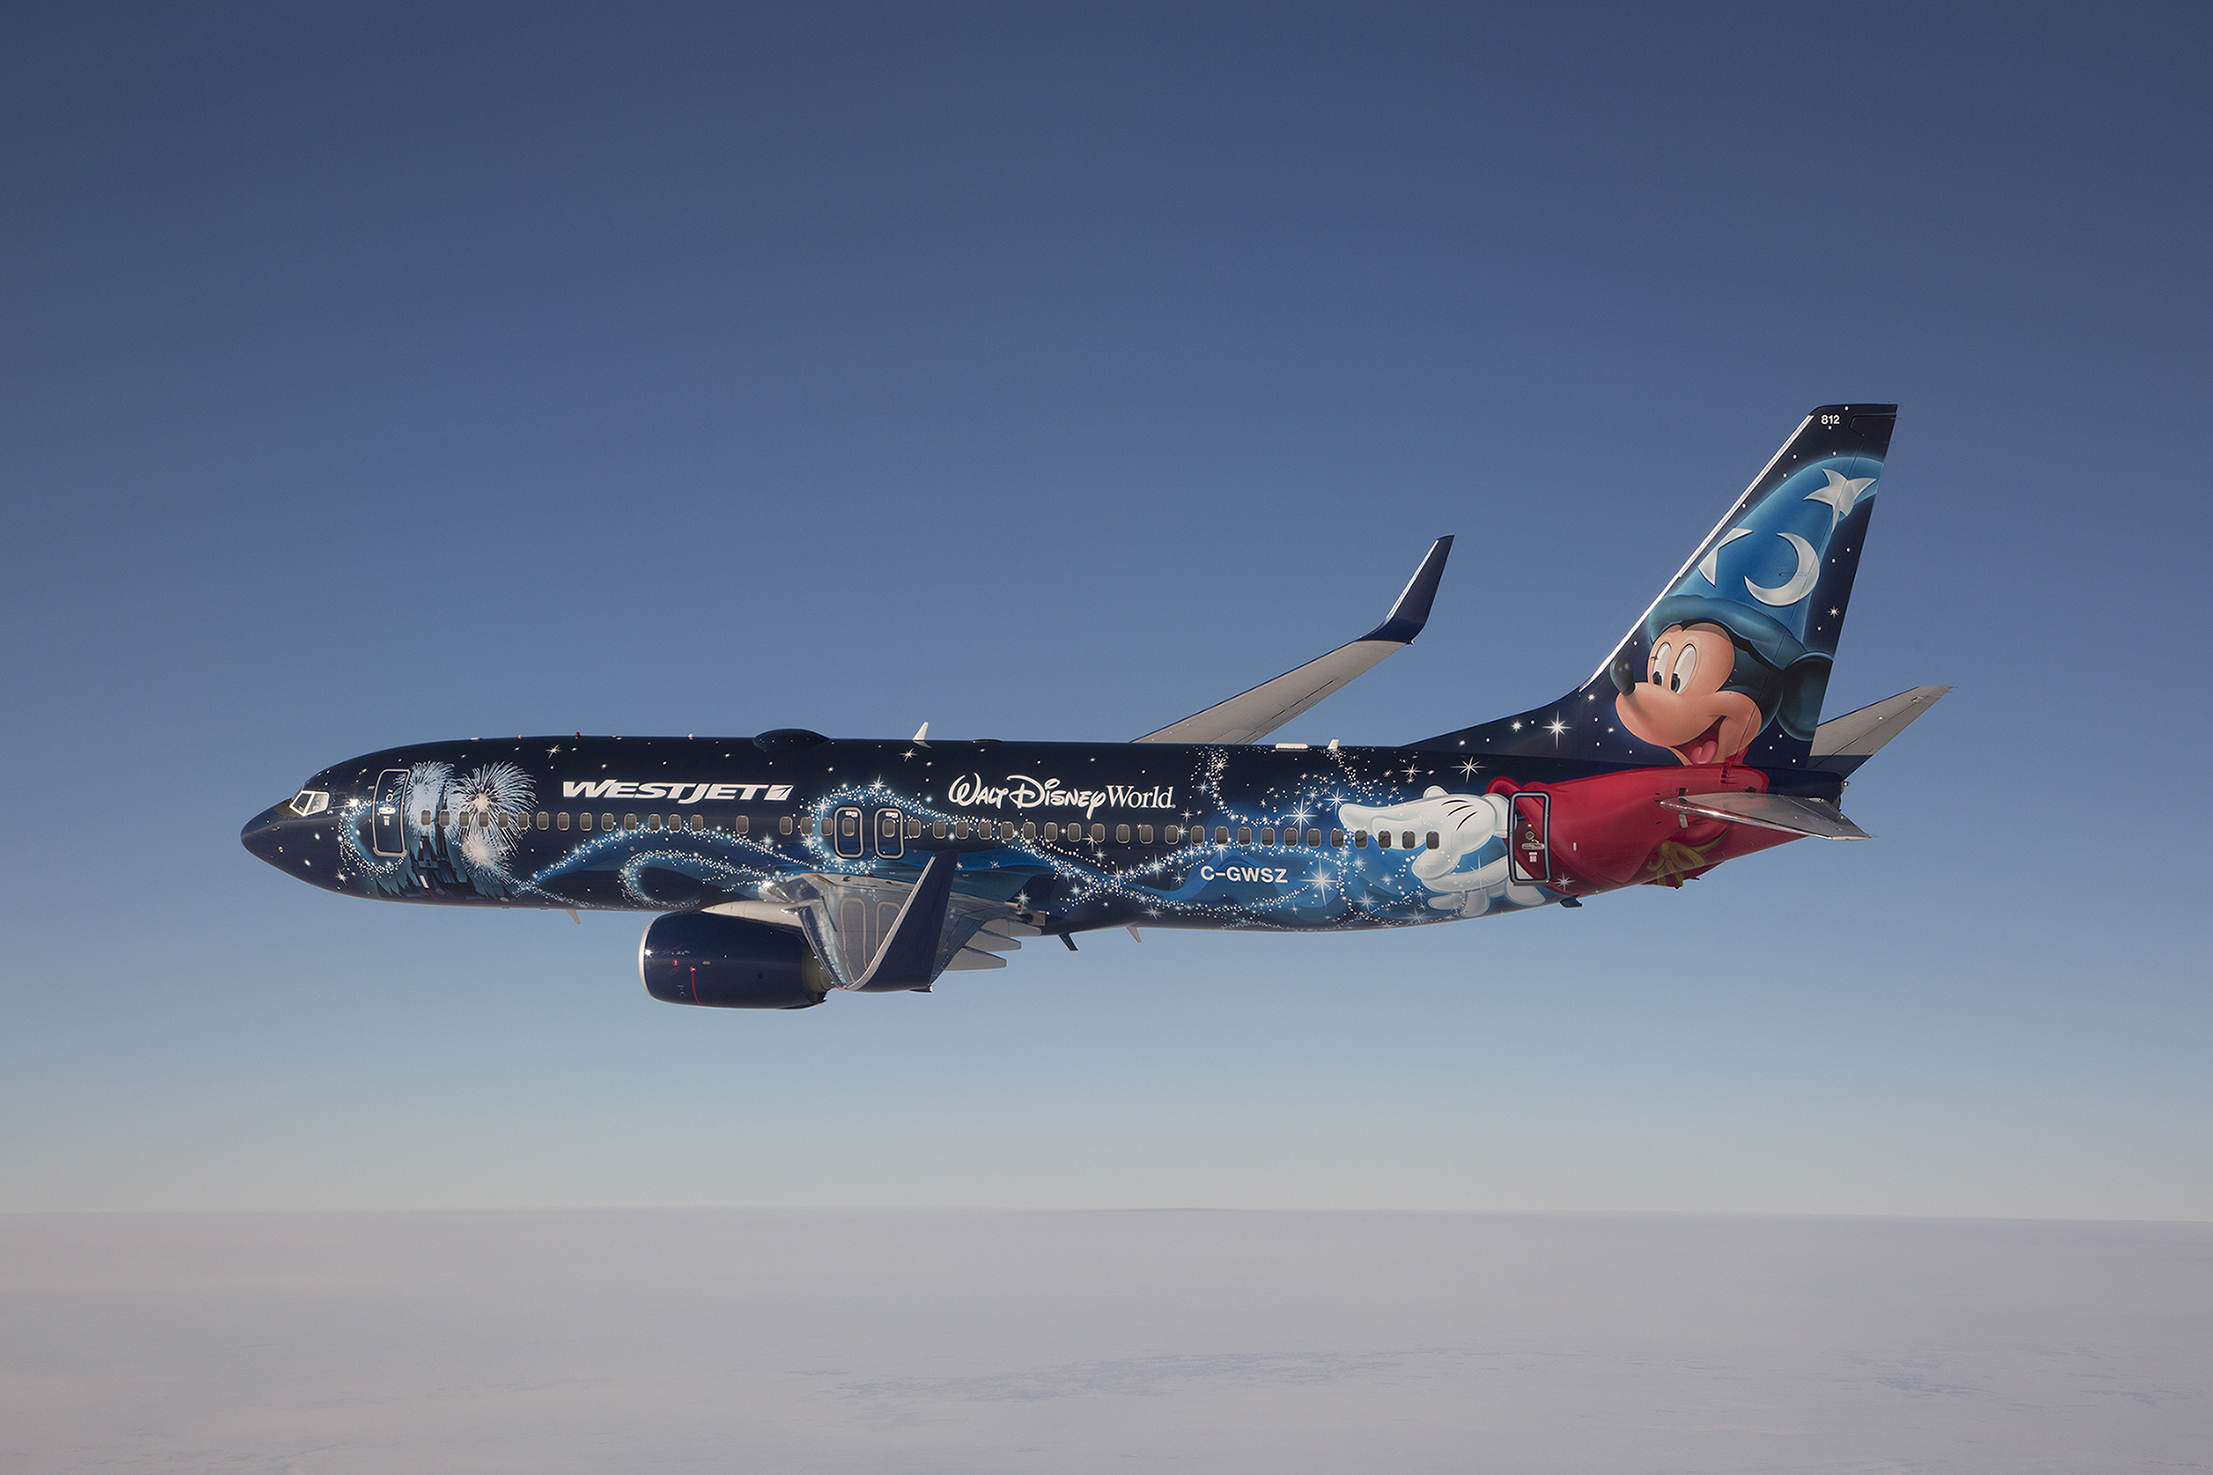 WestJet Magic Plane